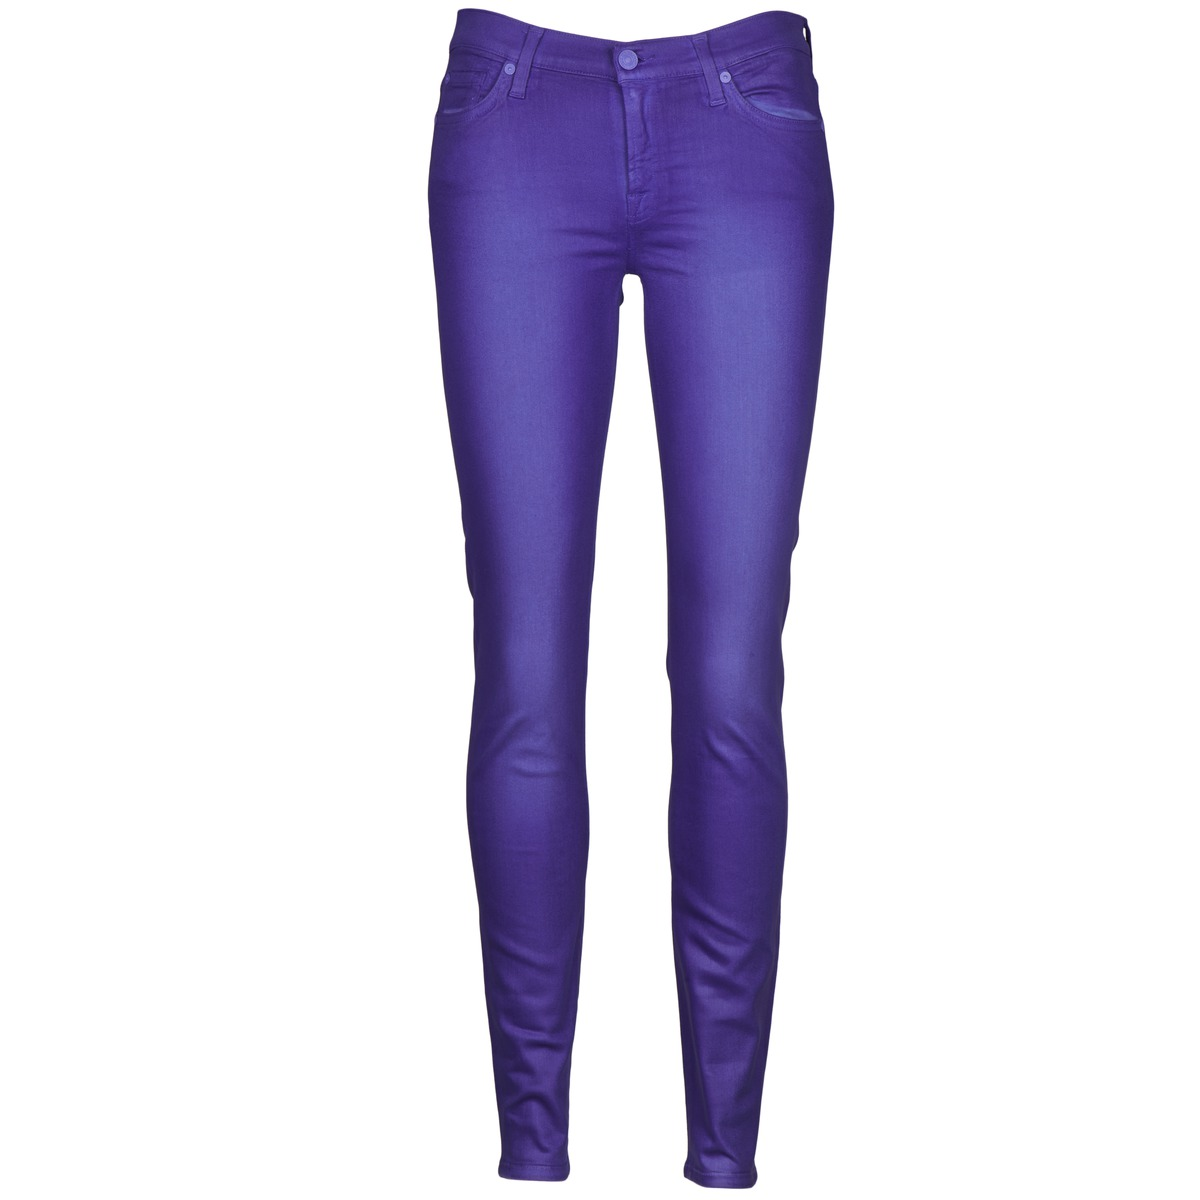 7 for all mankind  the skinny vine leaf  women's skinny jeans in purple